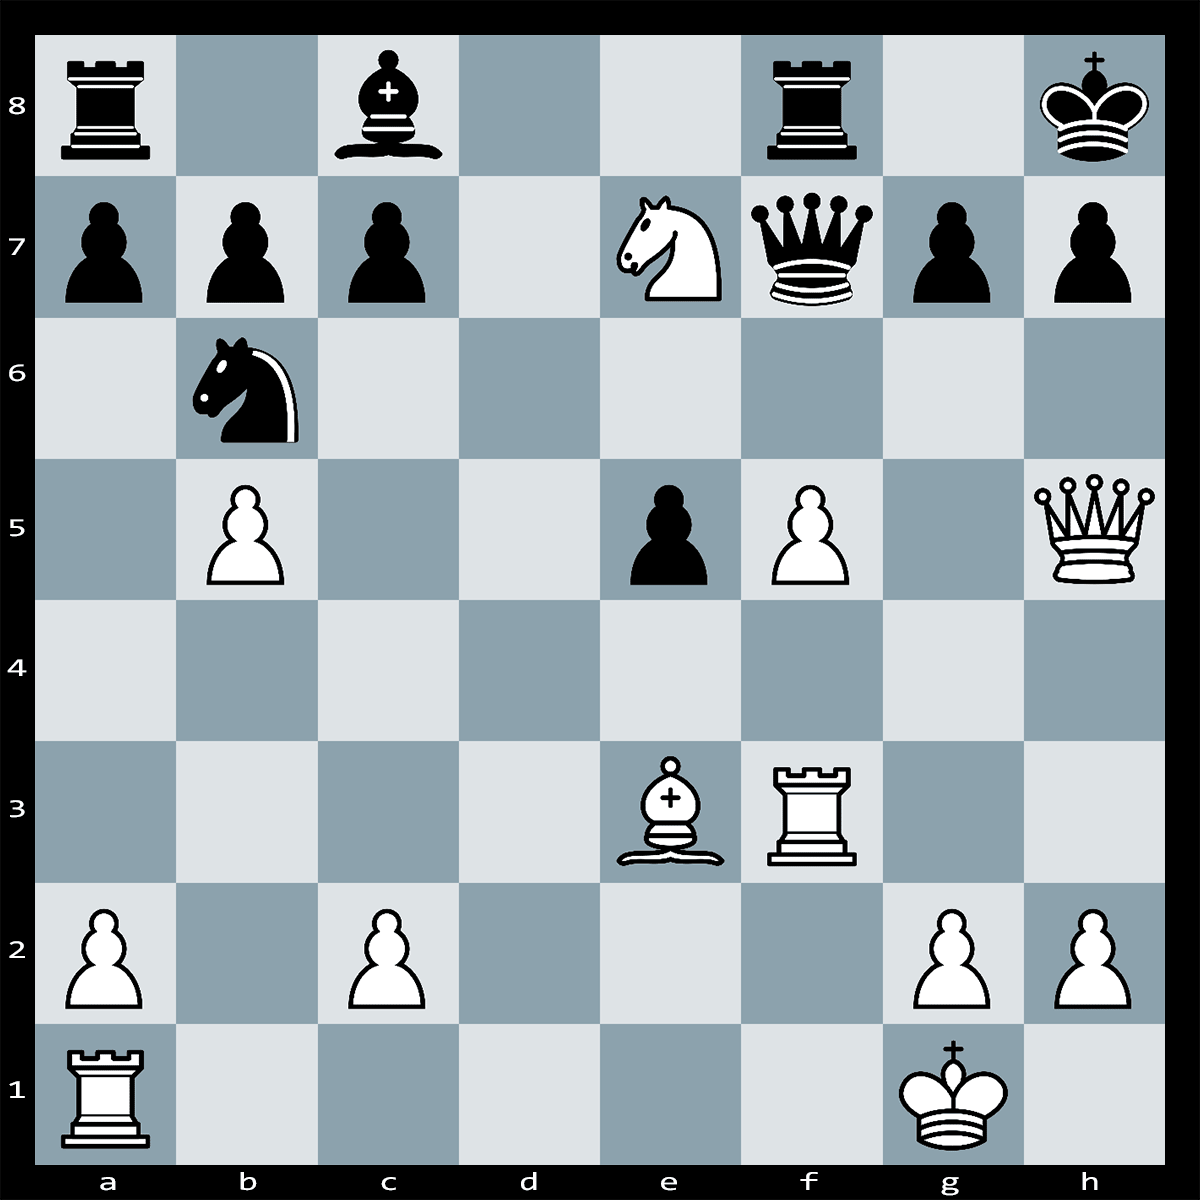 Mate in Three Moves white to Play - Chess Puzzle #14